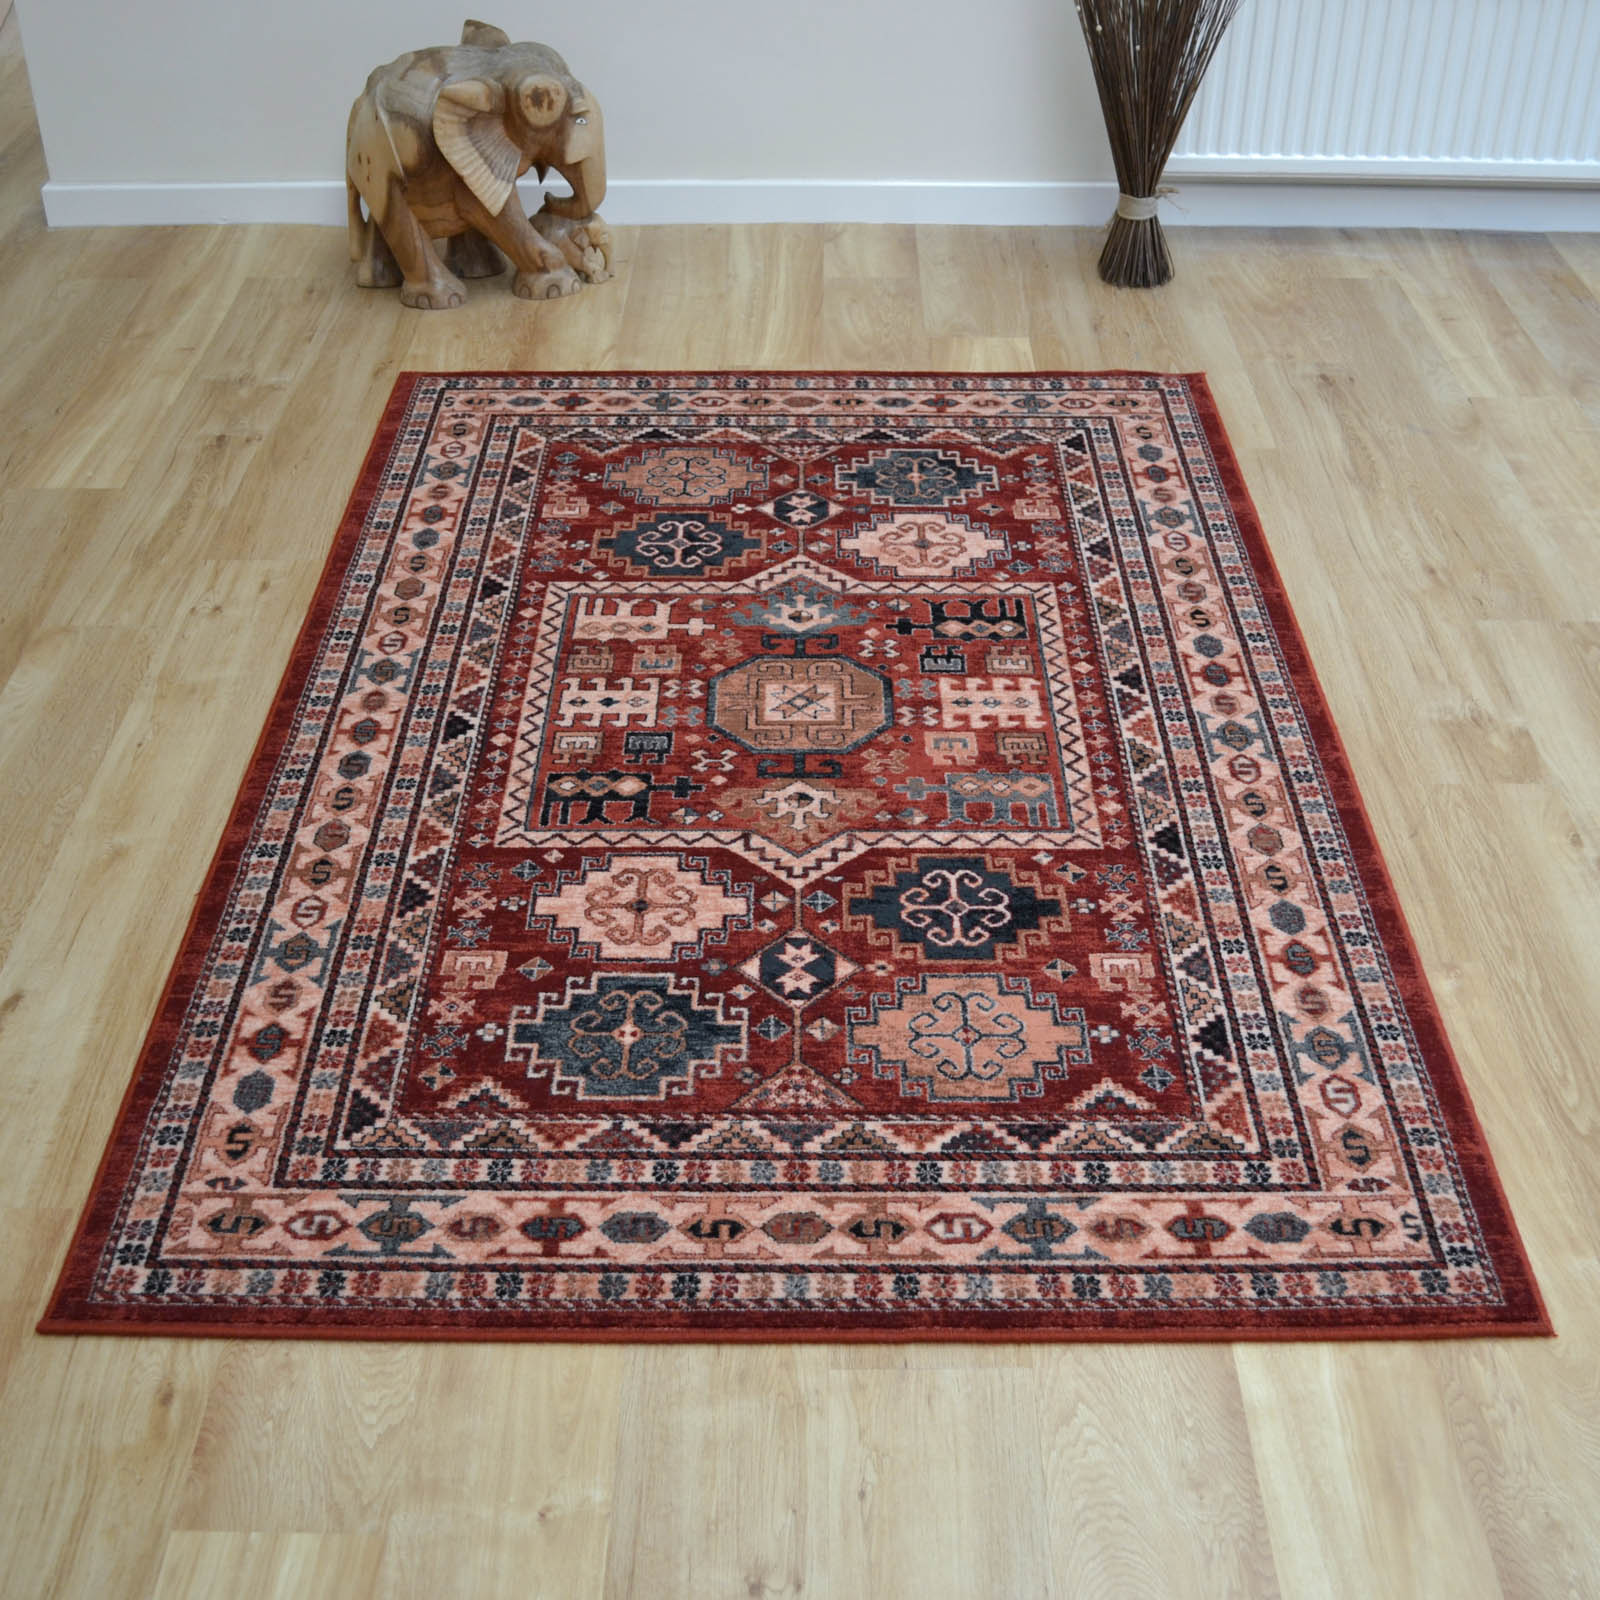 Royal Kashqai Rugs 4306 300 in Brick